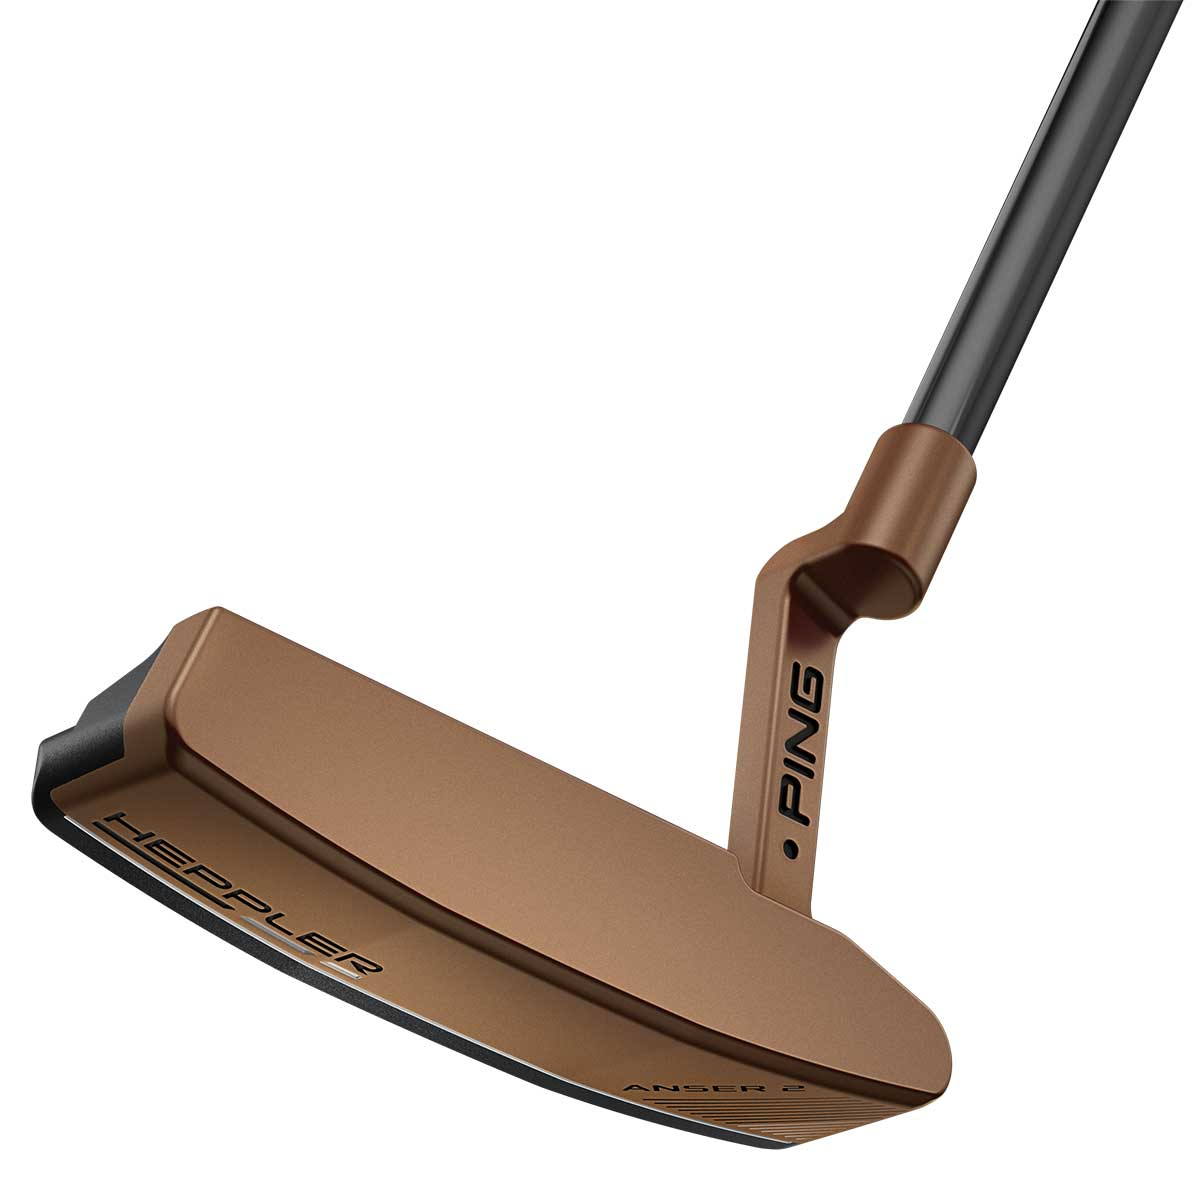 PING Heppler Left Hand Putters